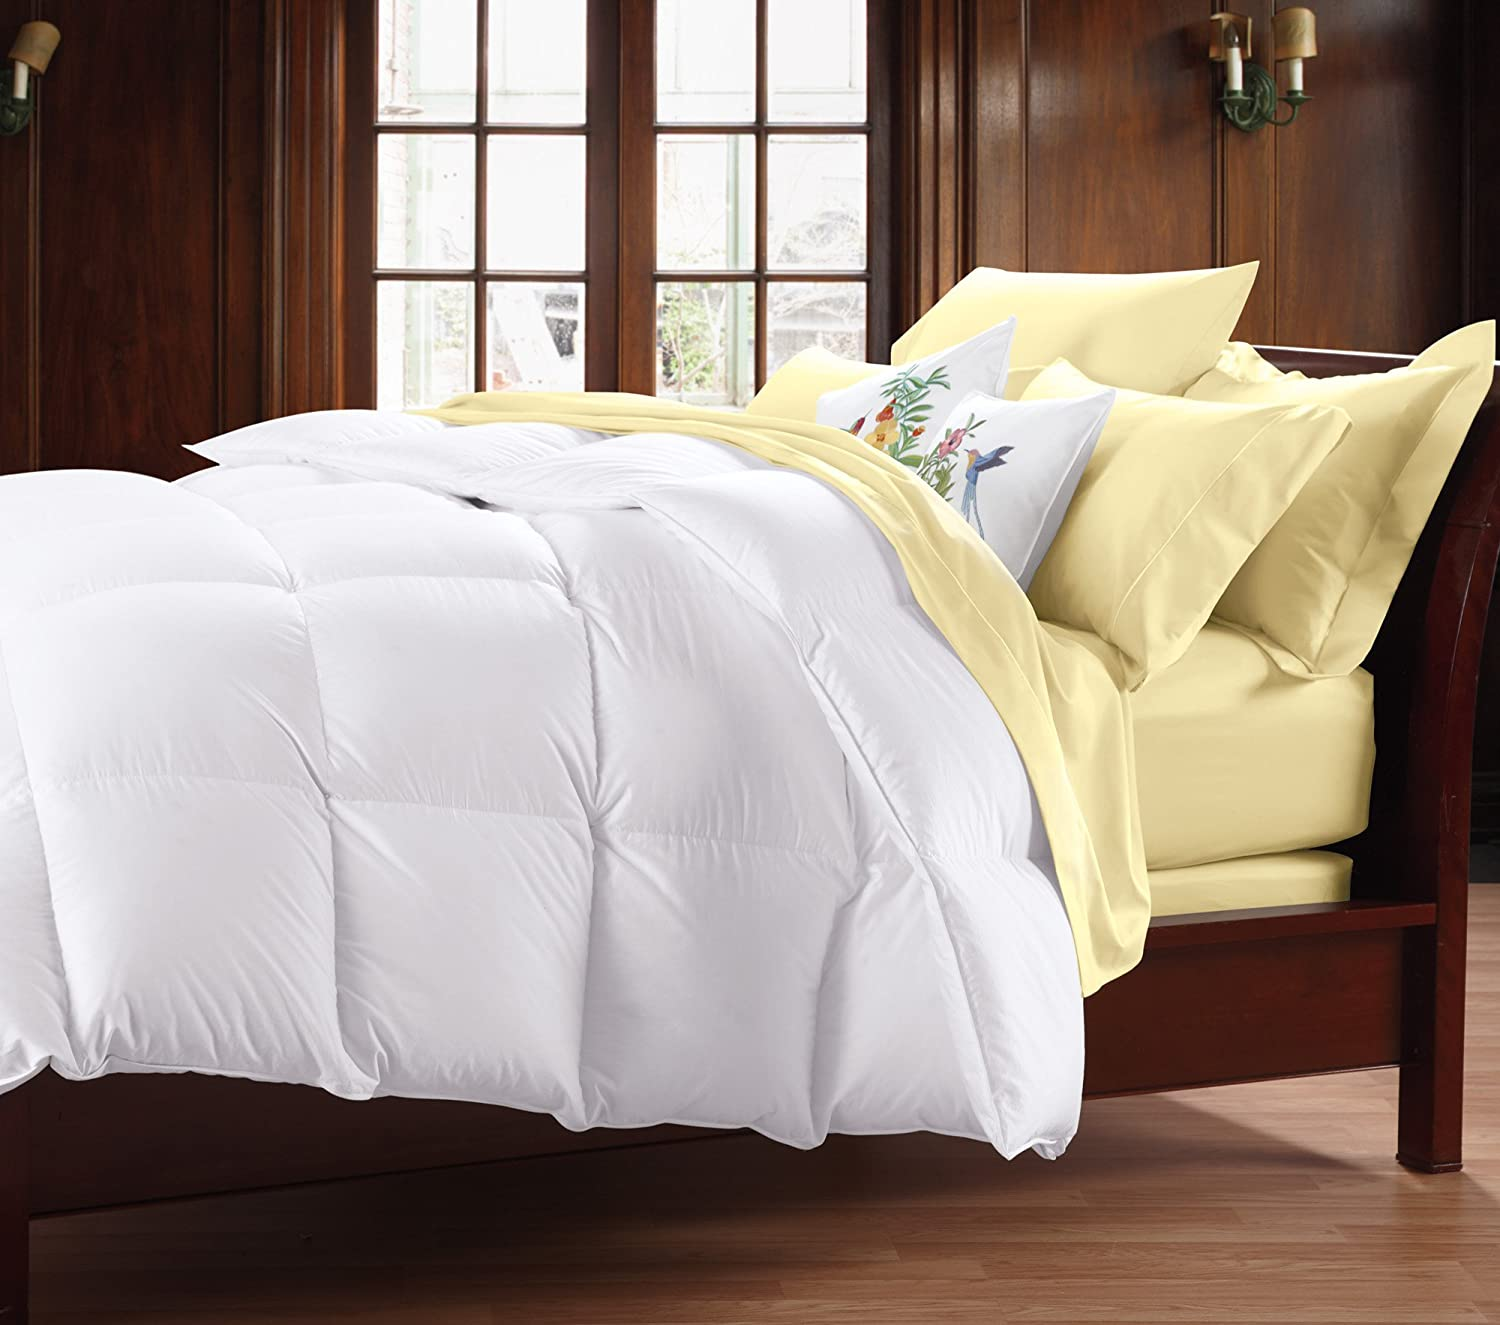 Cuddledown 400TC Down Comforter, Over Size, King, Summer, White: